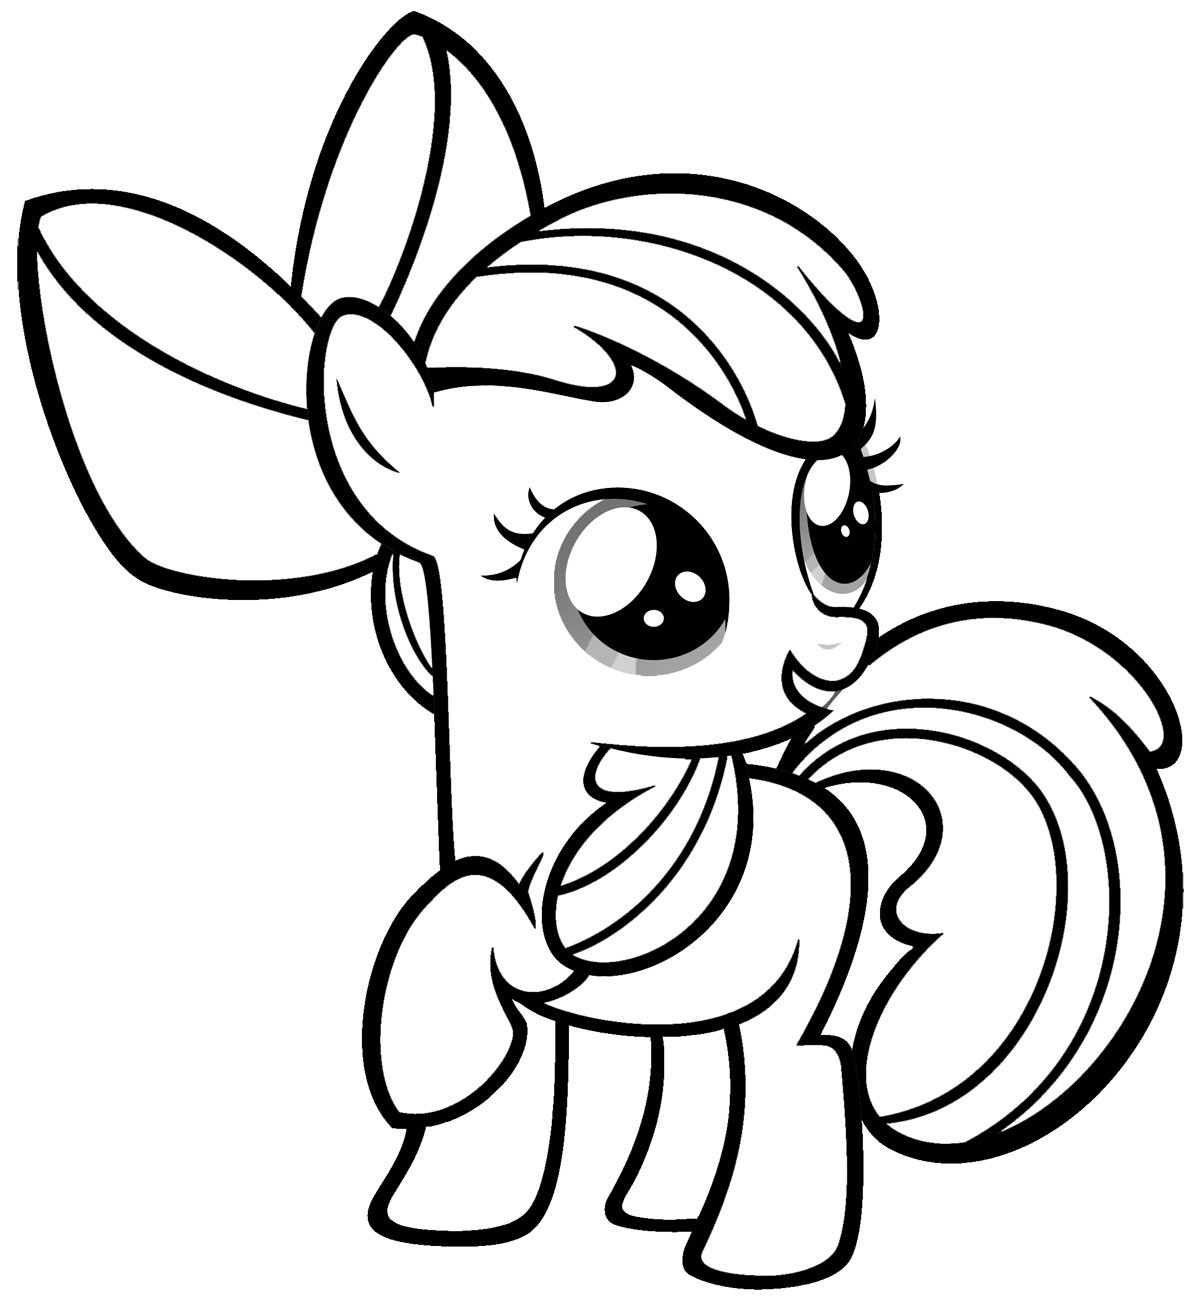 coloring pages of my little pony - Free Printable Coloring Pages